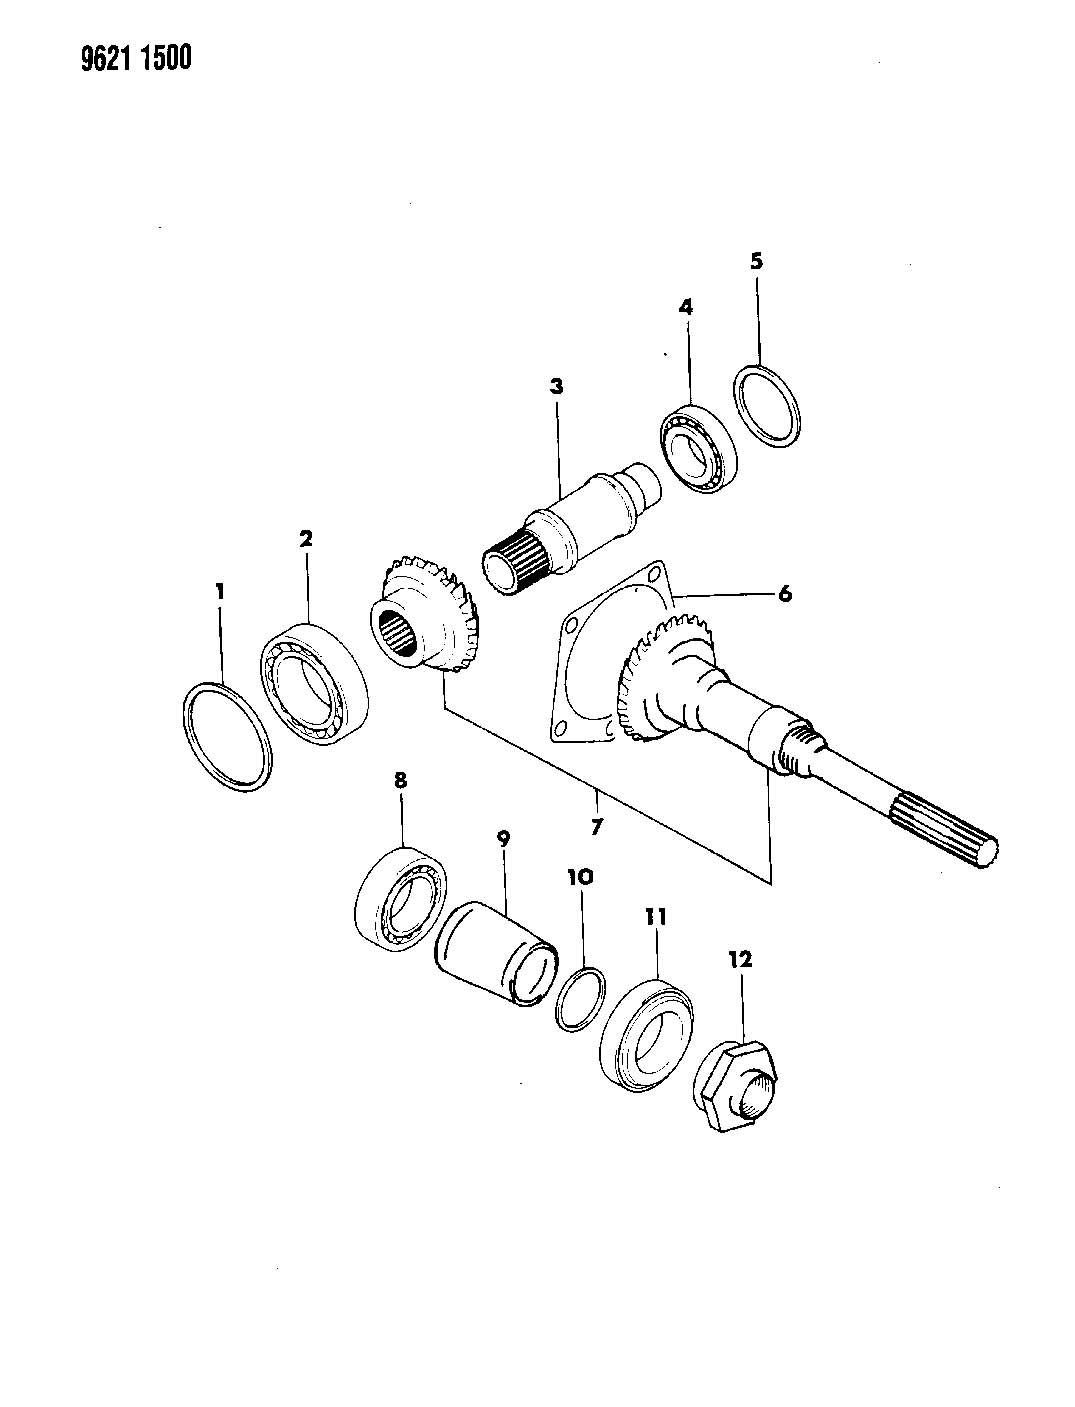 TRANSFER GEAR AND SHAFT MANUAL TRANSAXLE, 5 SPEED LASER